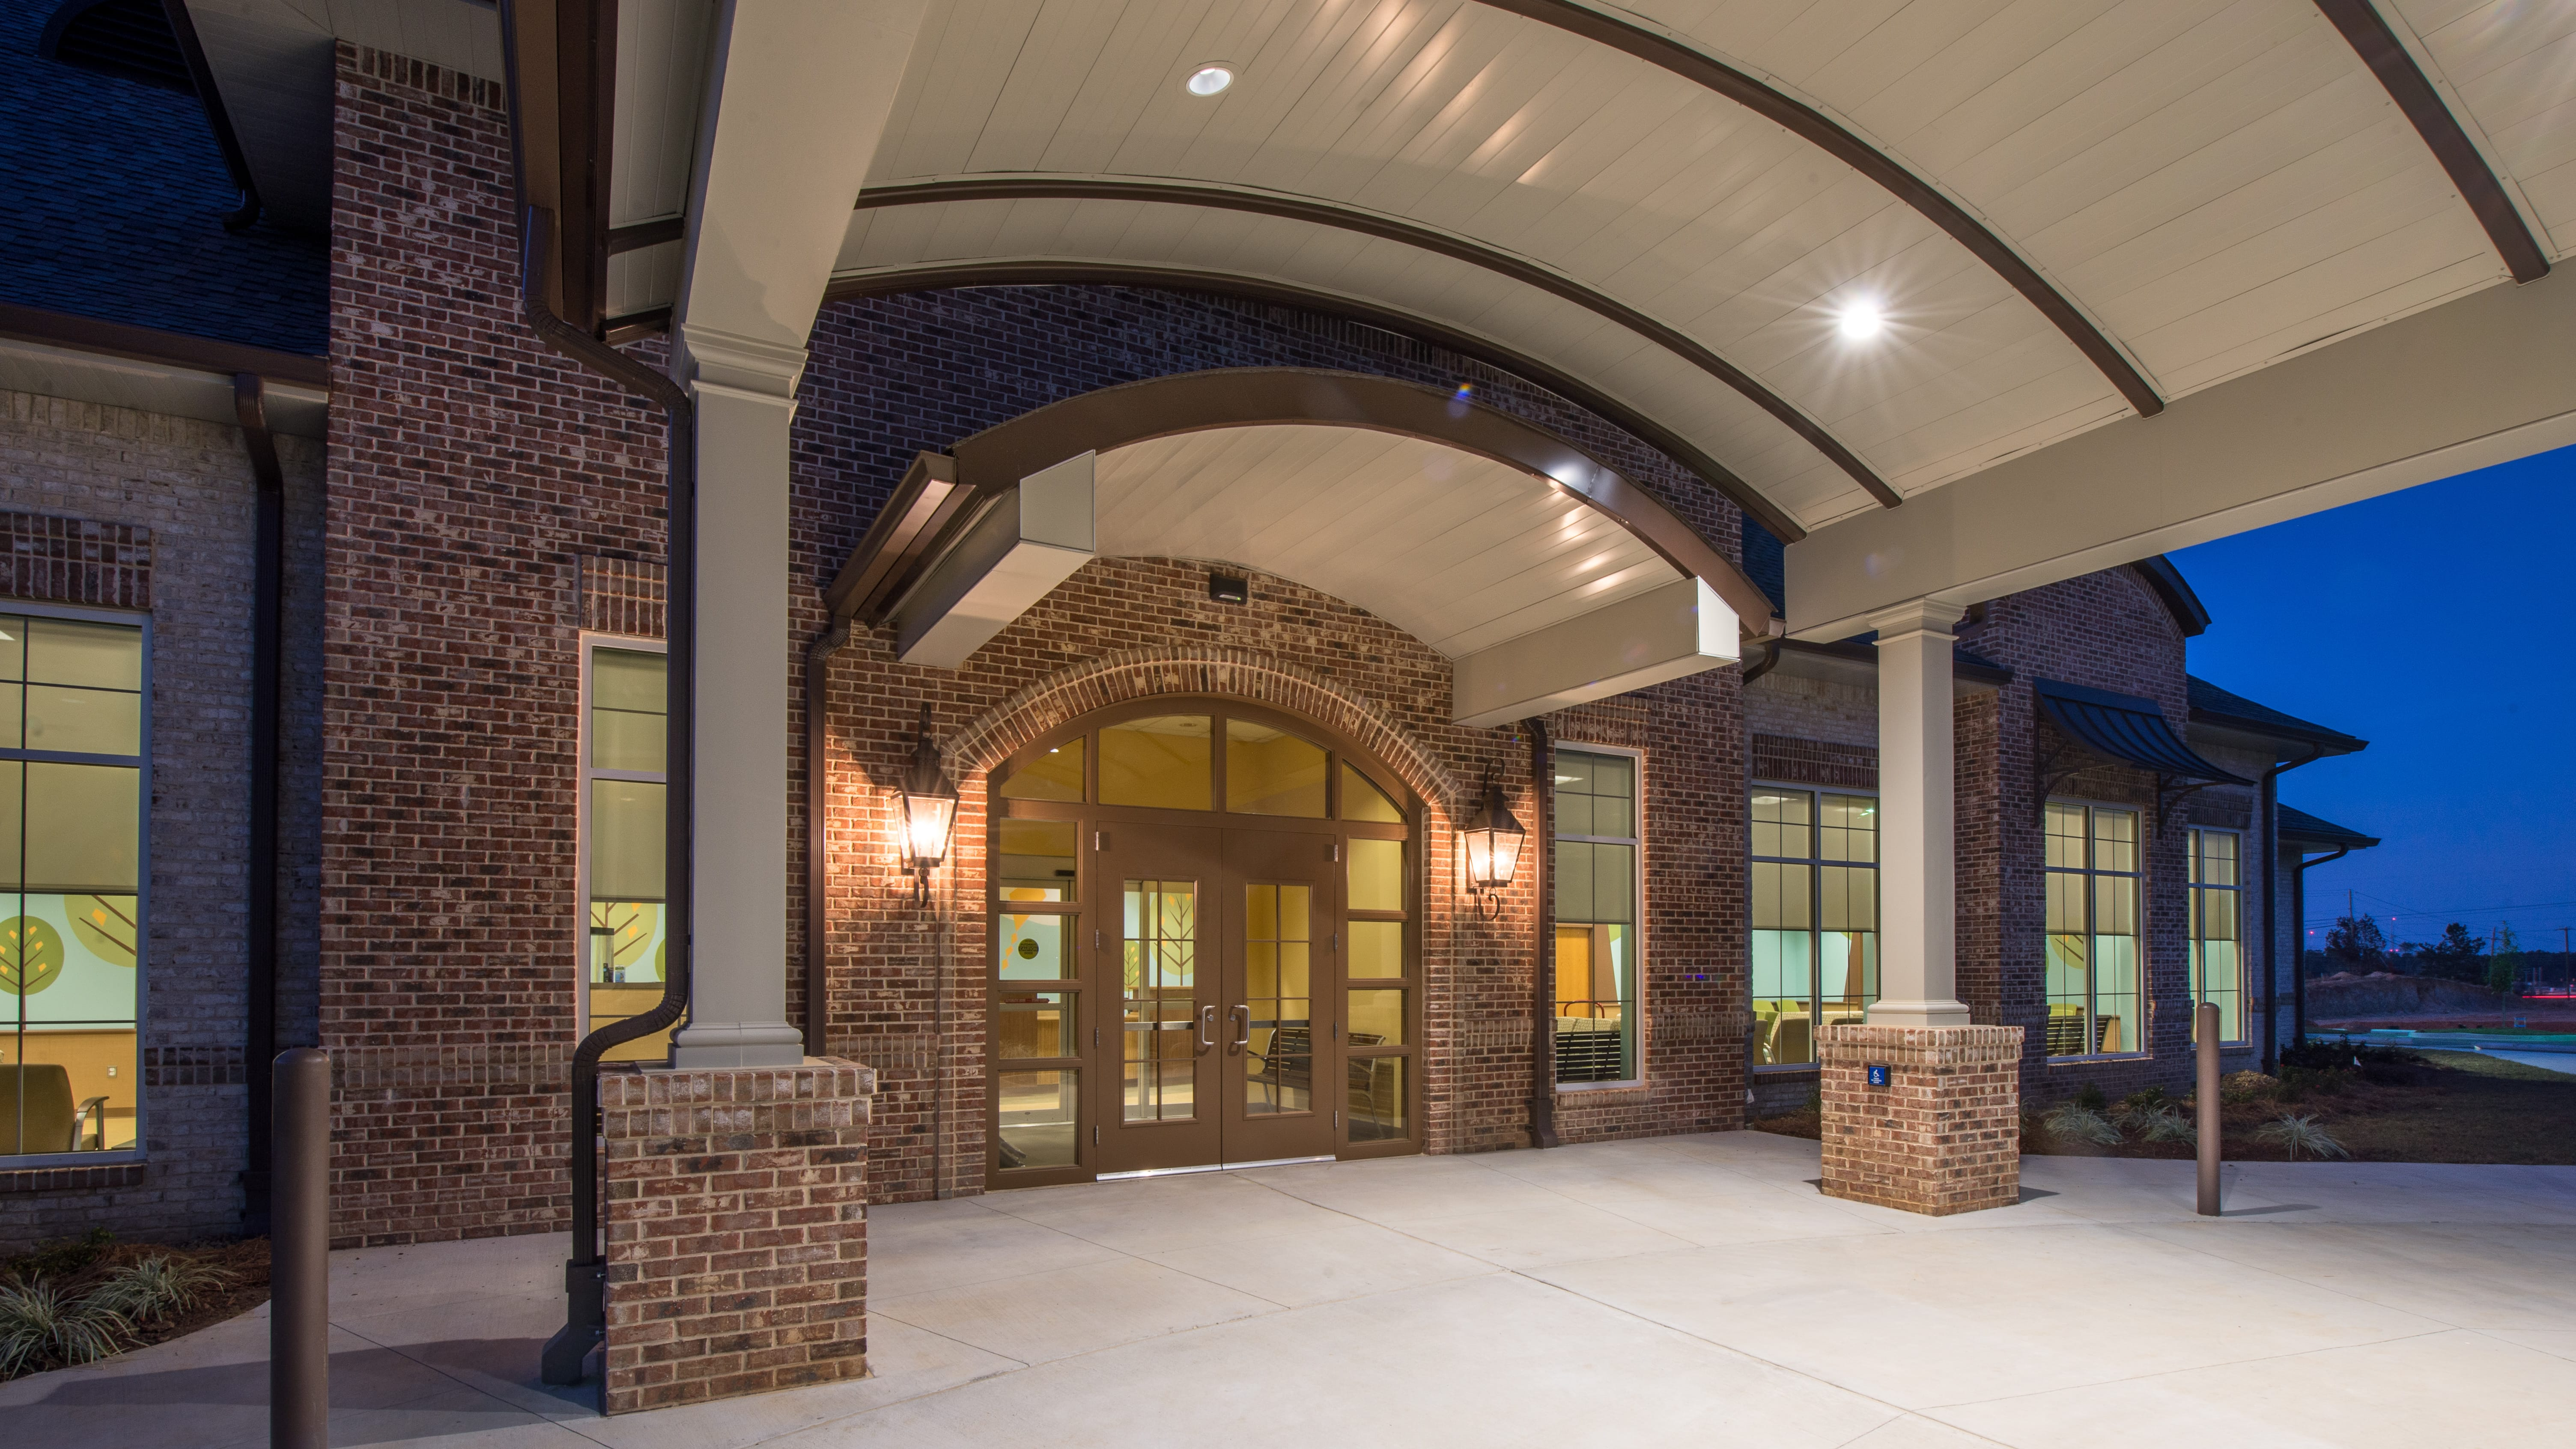 West Point Ms >> Full Project List | Hanco Corp